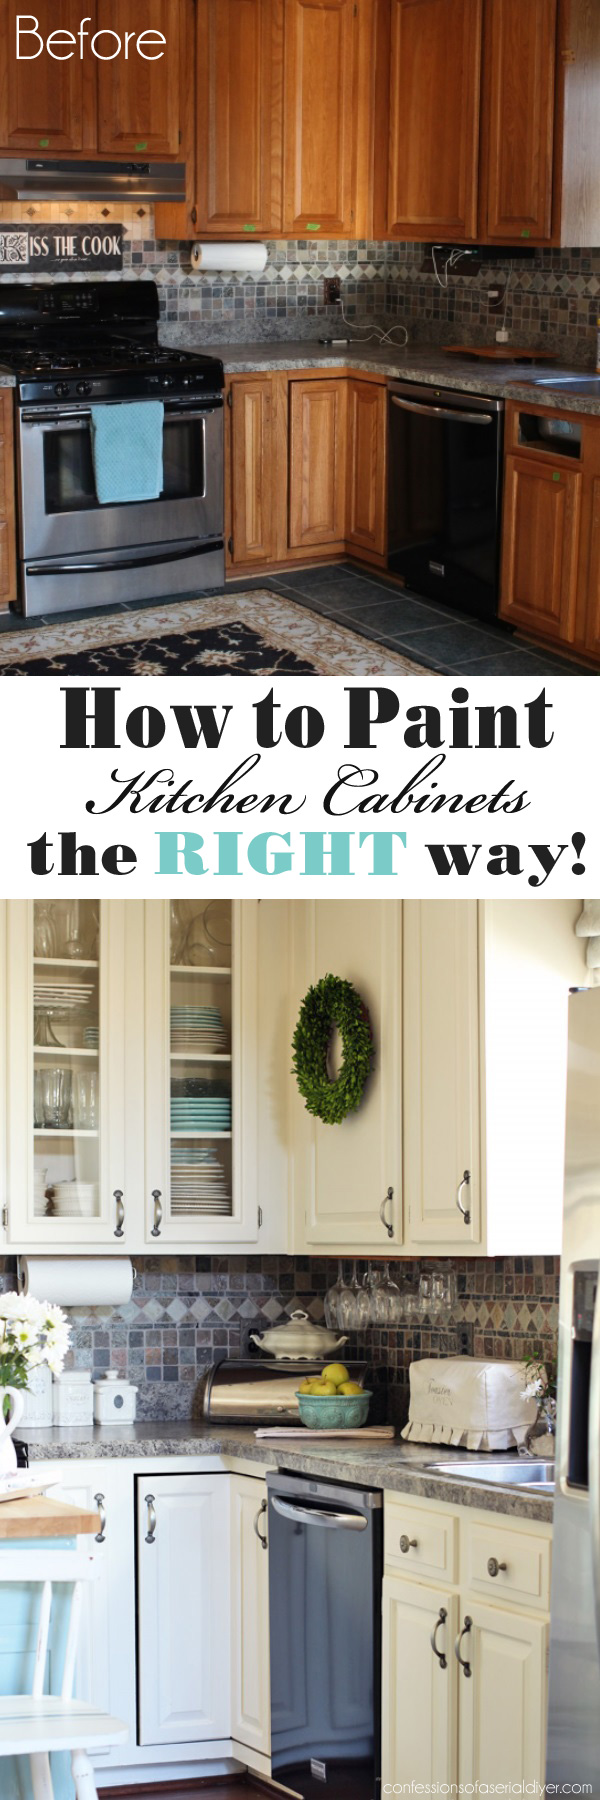 cabinets ideas resnooze cabinet pure home design color white paint chalk kitchen com annie sloan